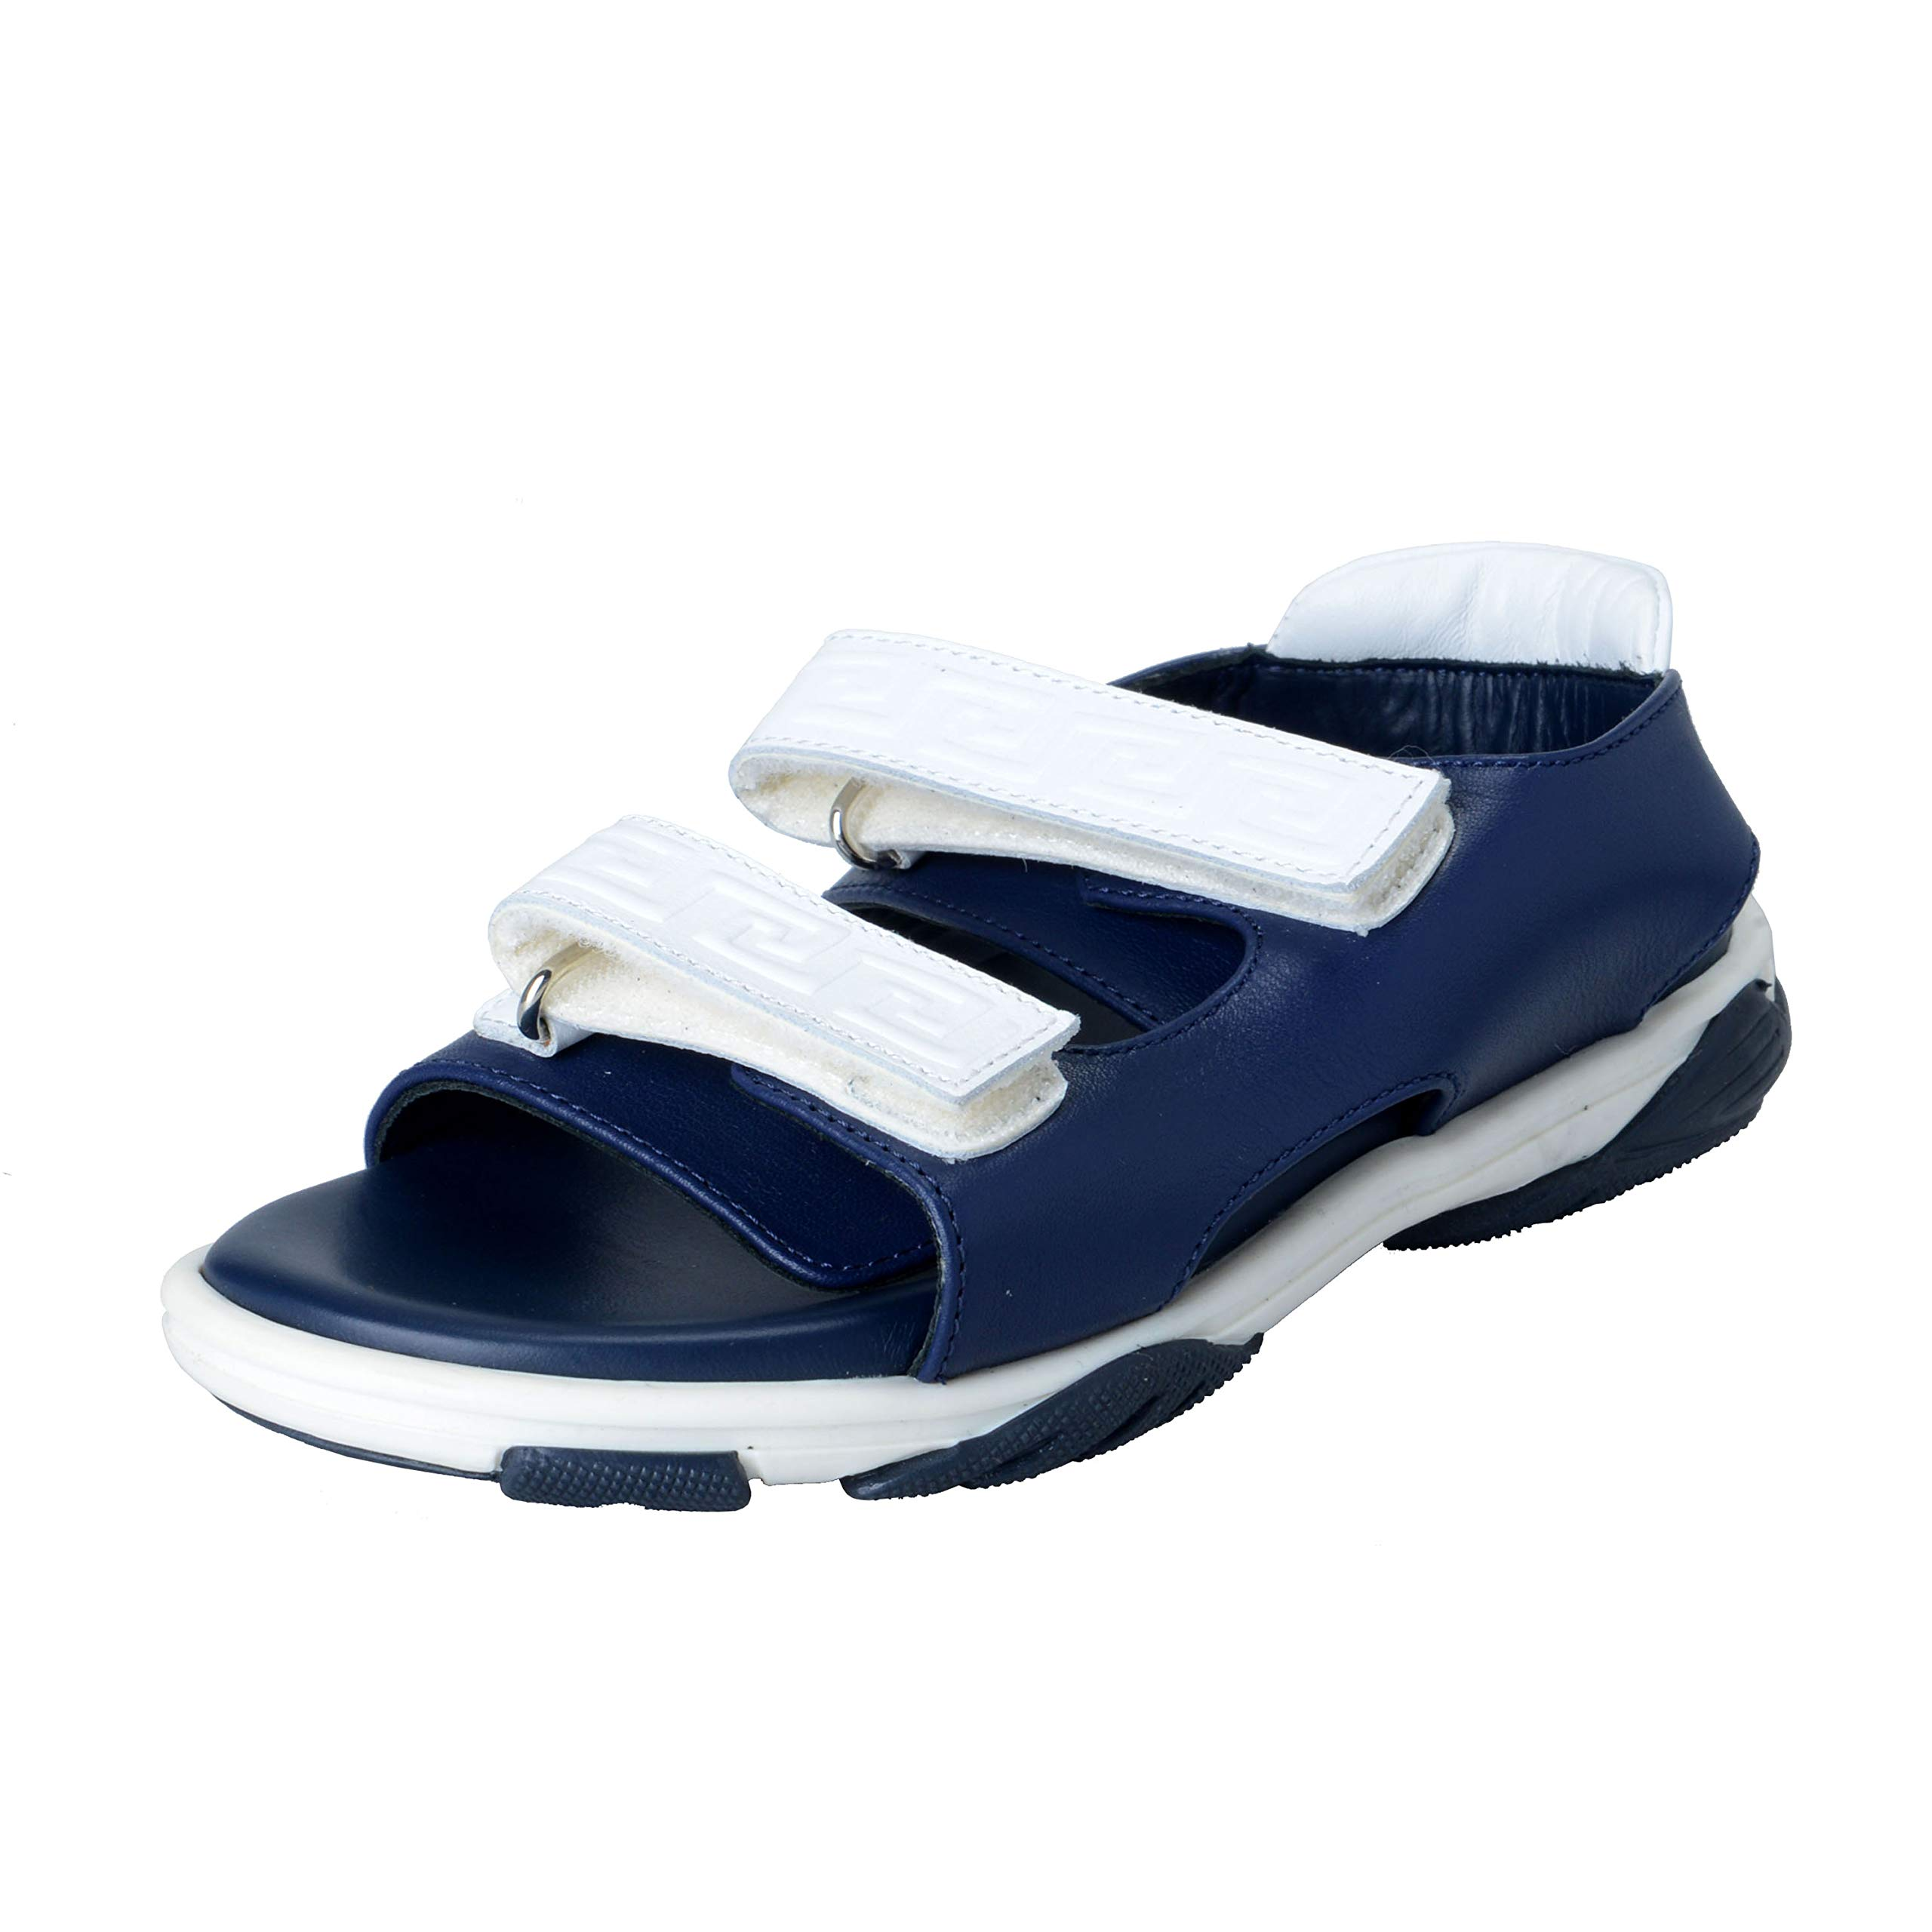 Versace Young Kid's Blue/White Strappy Leather Sandals Shoes Sz 31